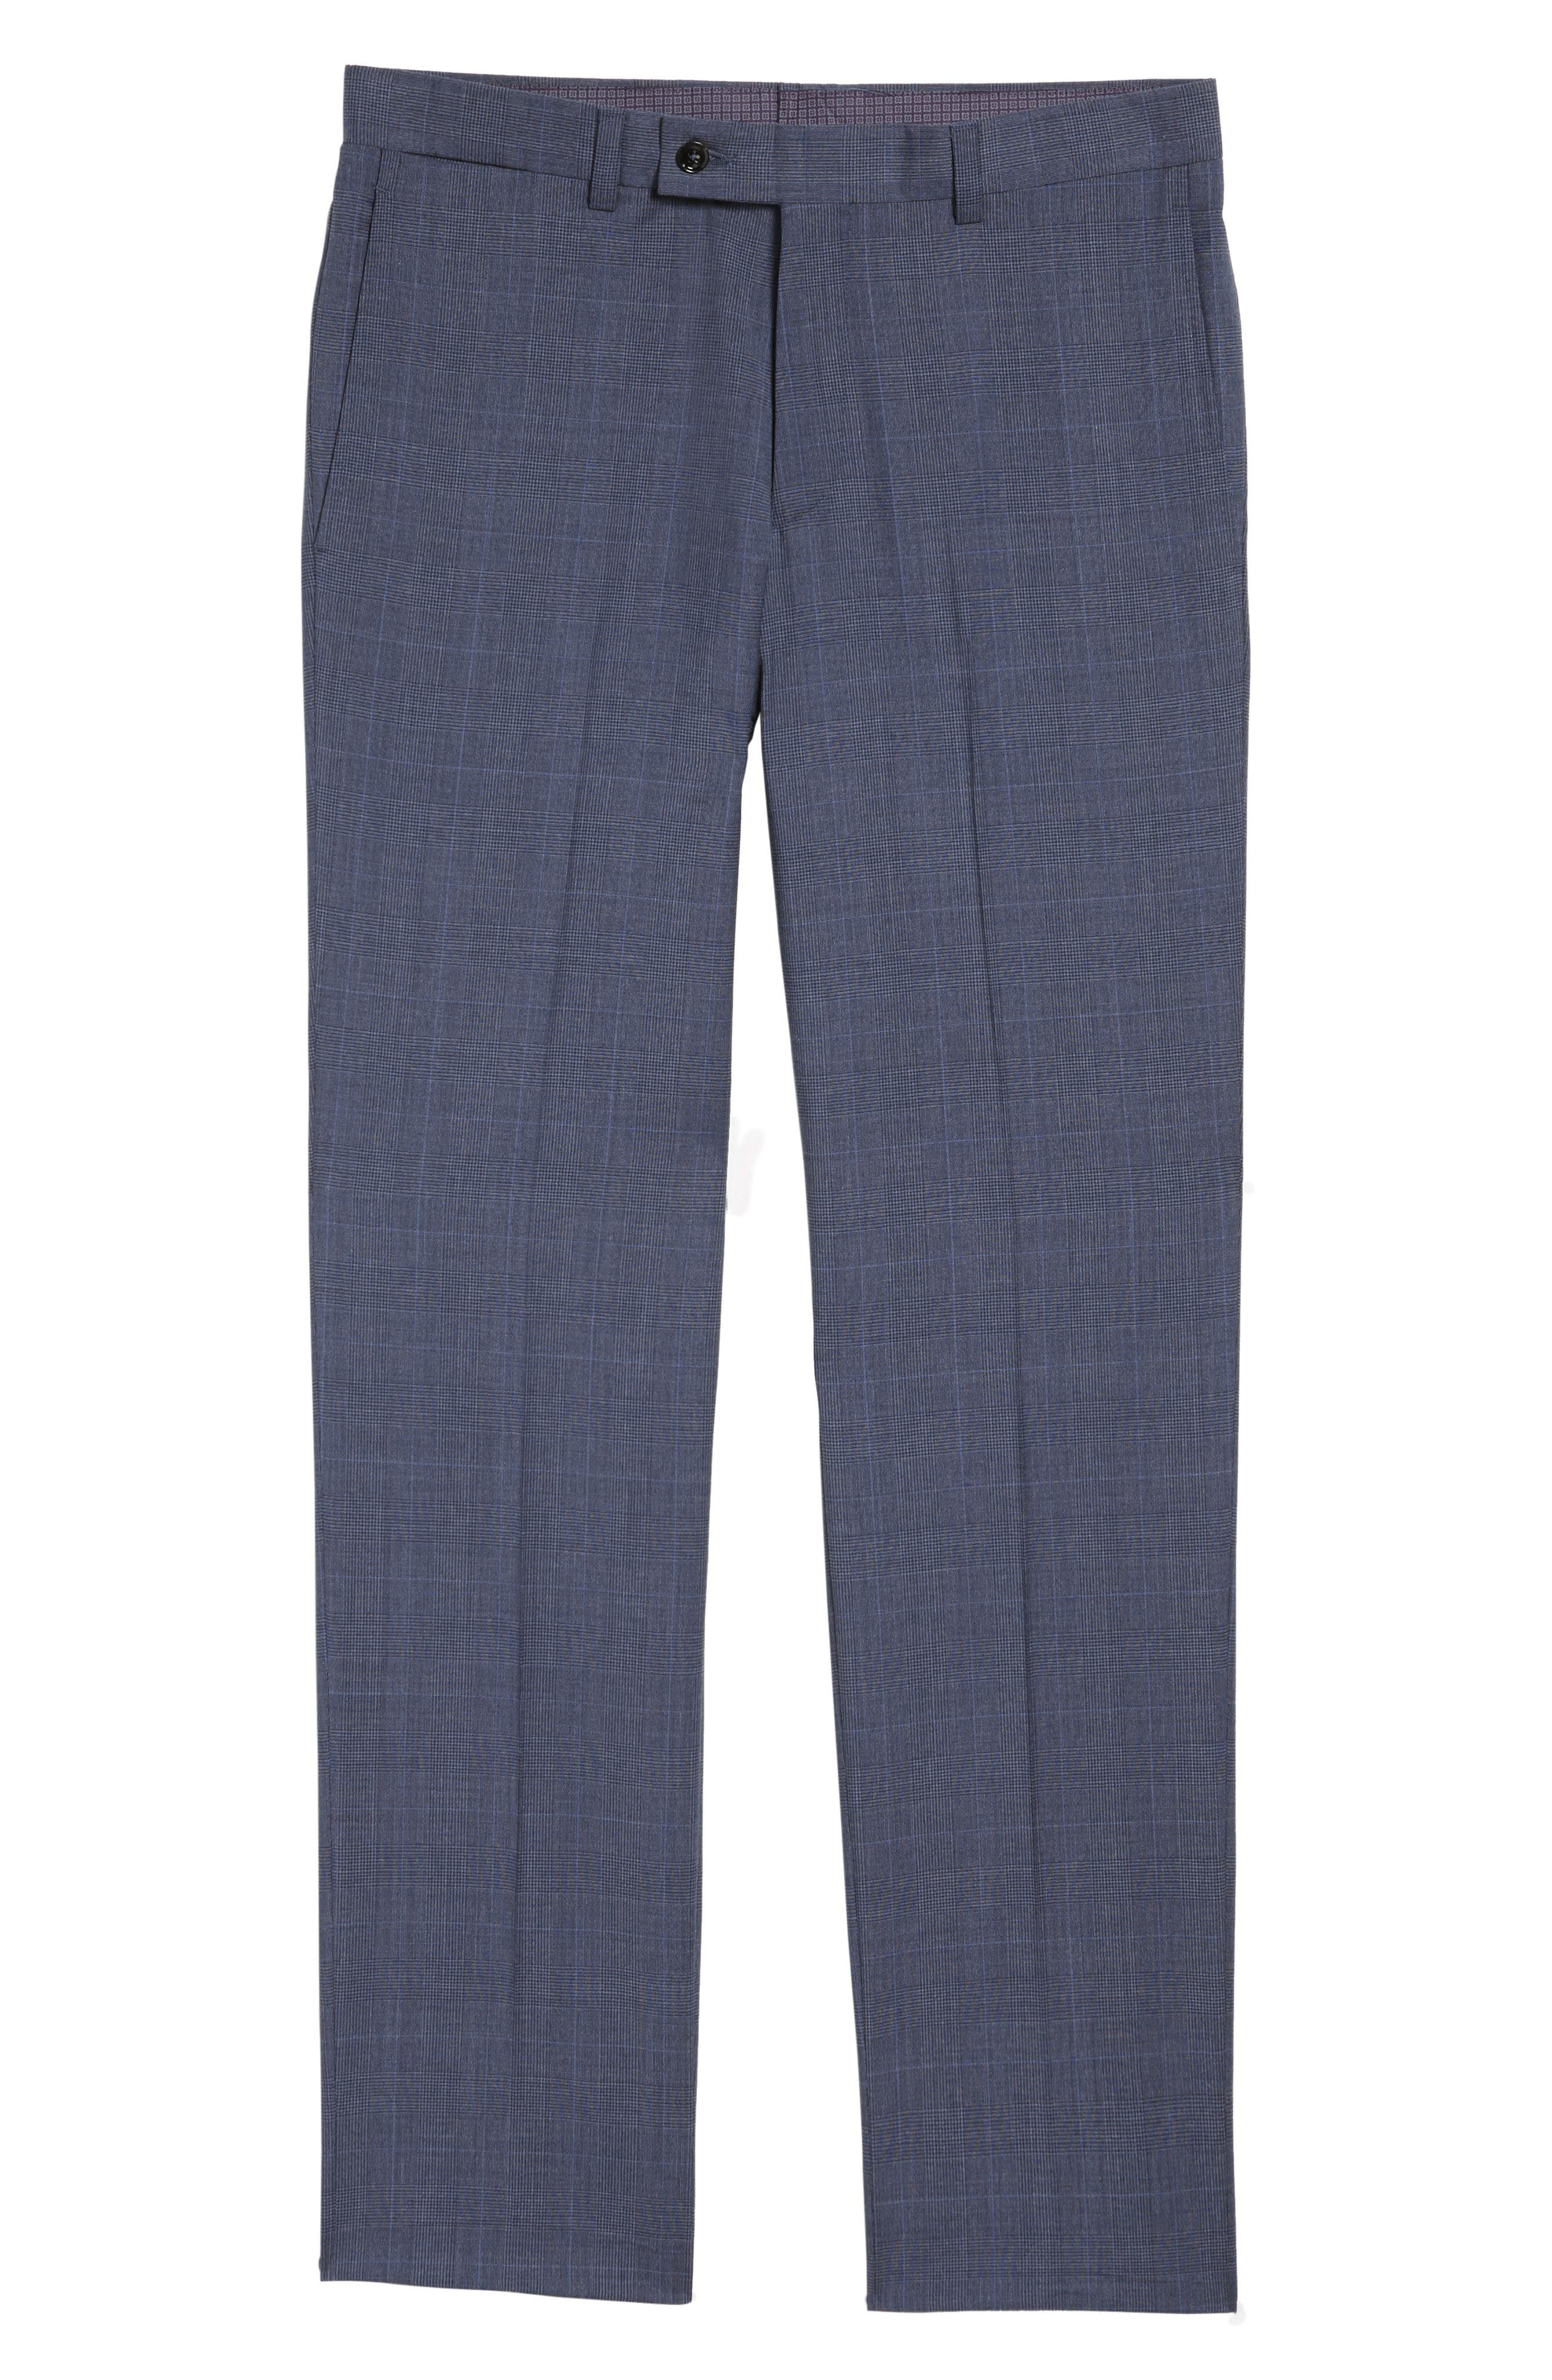 Jefferson Flat Front Wool Trousers,                             Alternate thumbnail 6, color,